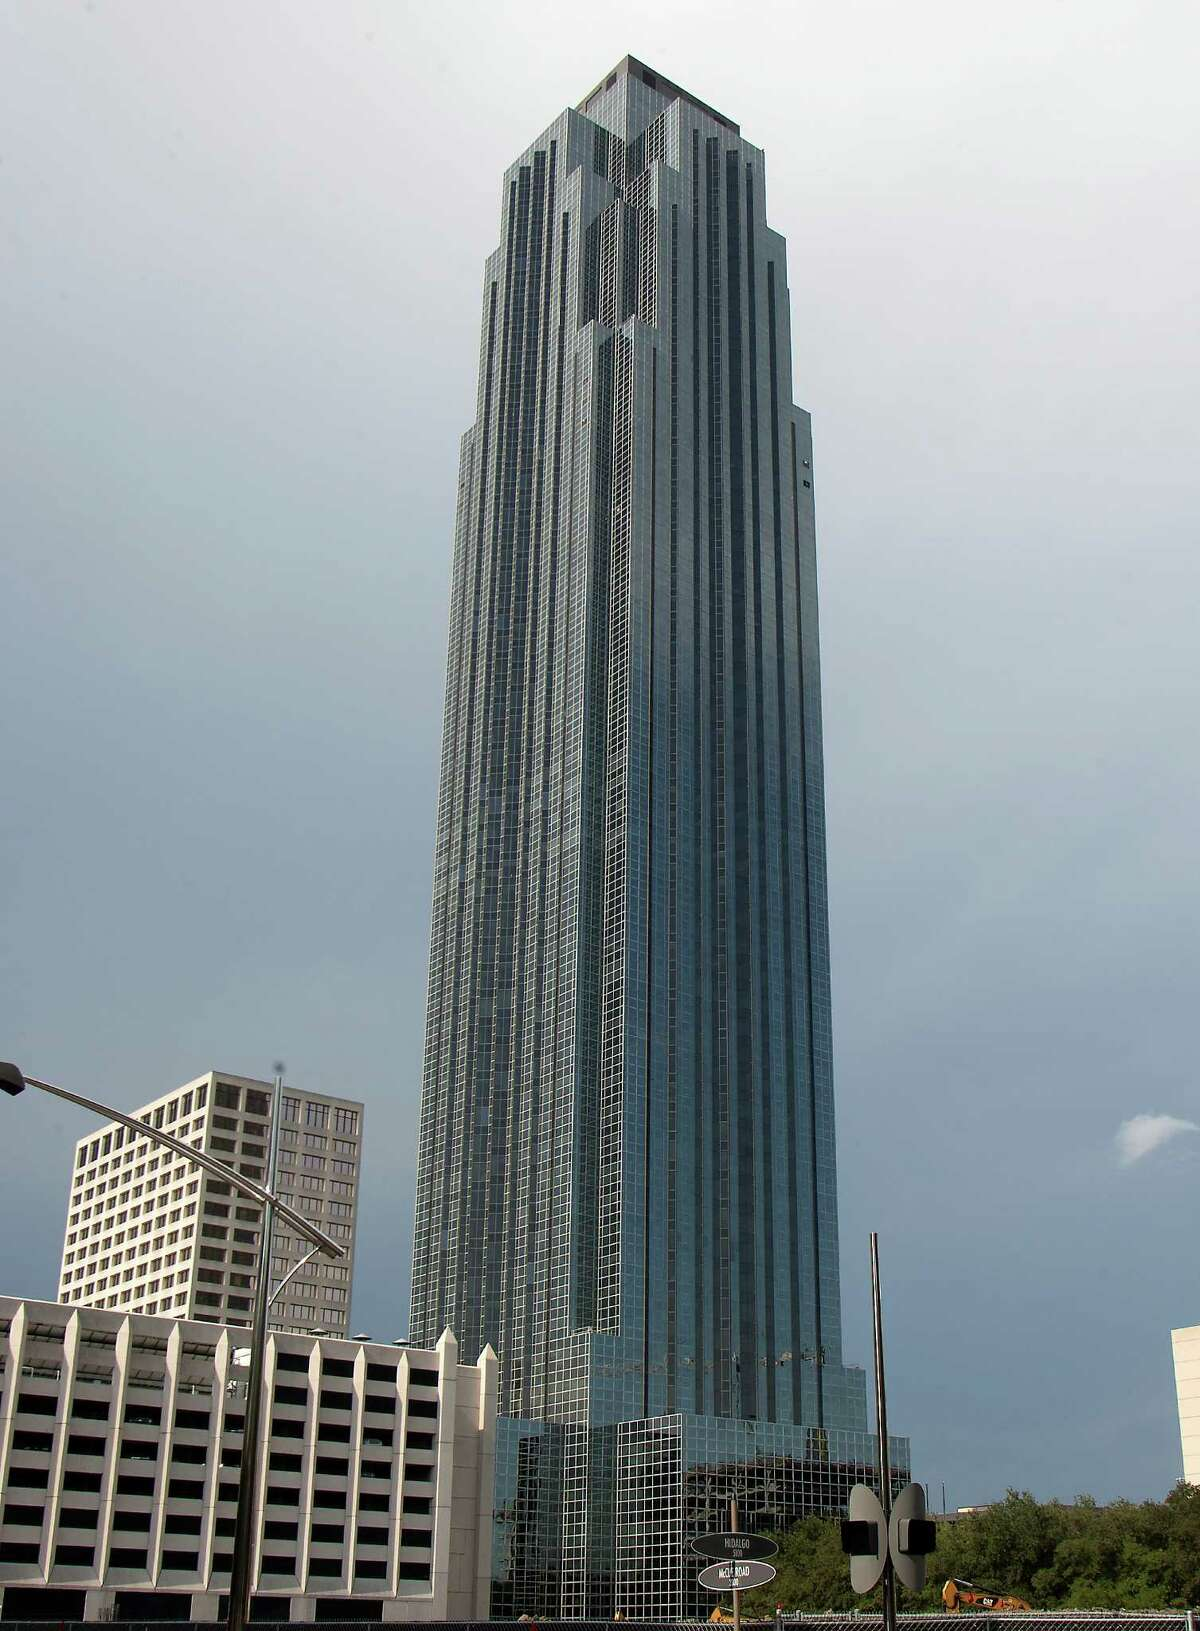 The Williams Tower is 909 feet tall and was built in 1983. It's more than 95 percent leased.